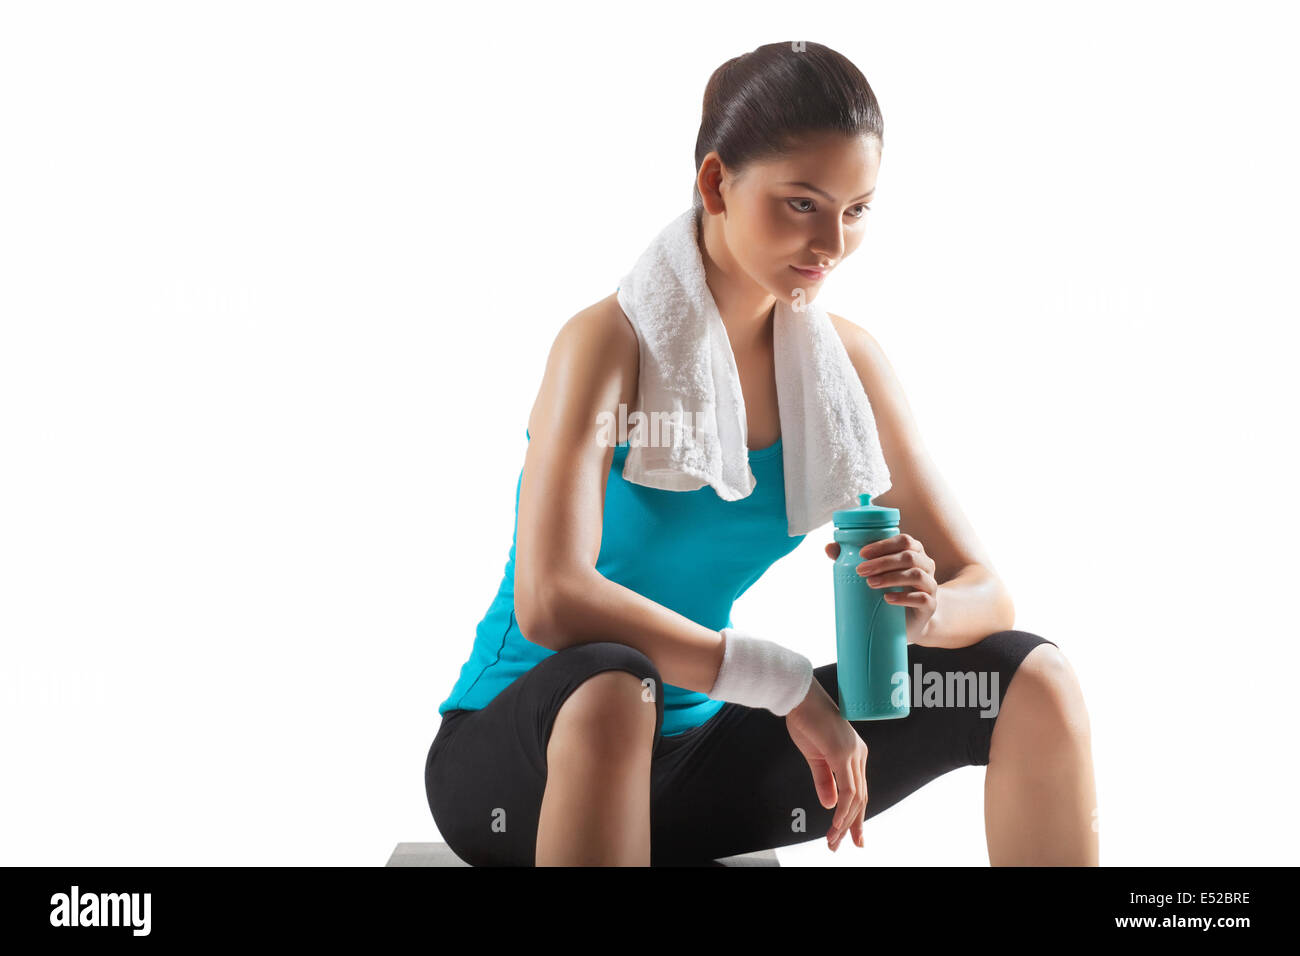 Fit young woman holding water bottle isolated over white background - Stock Image